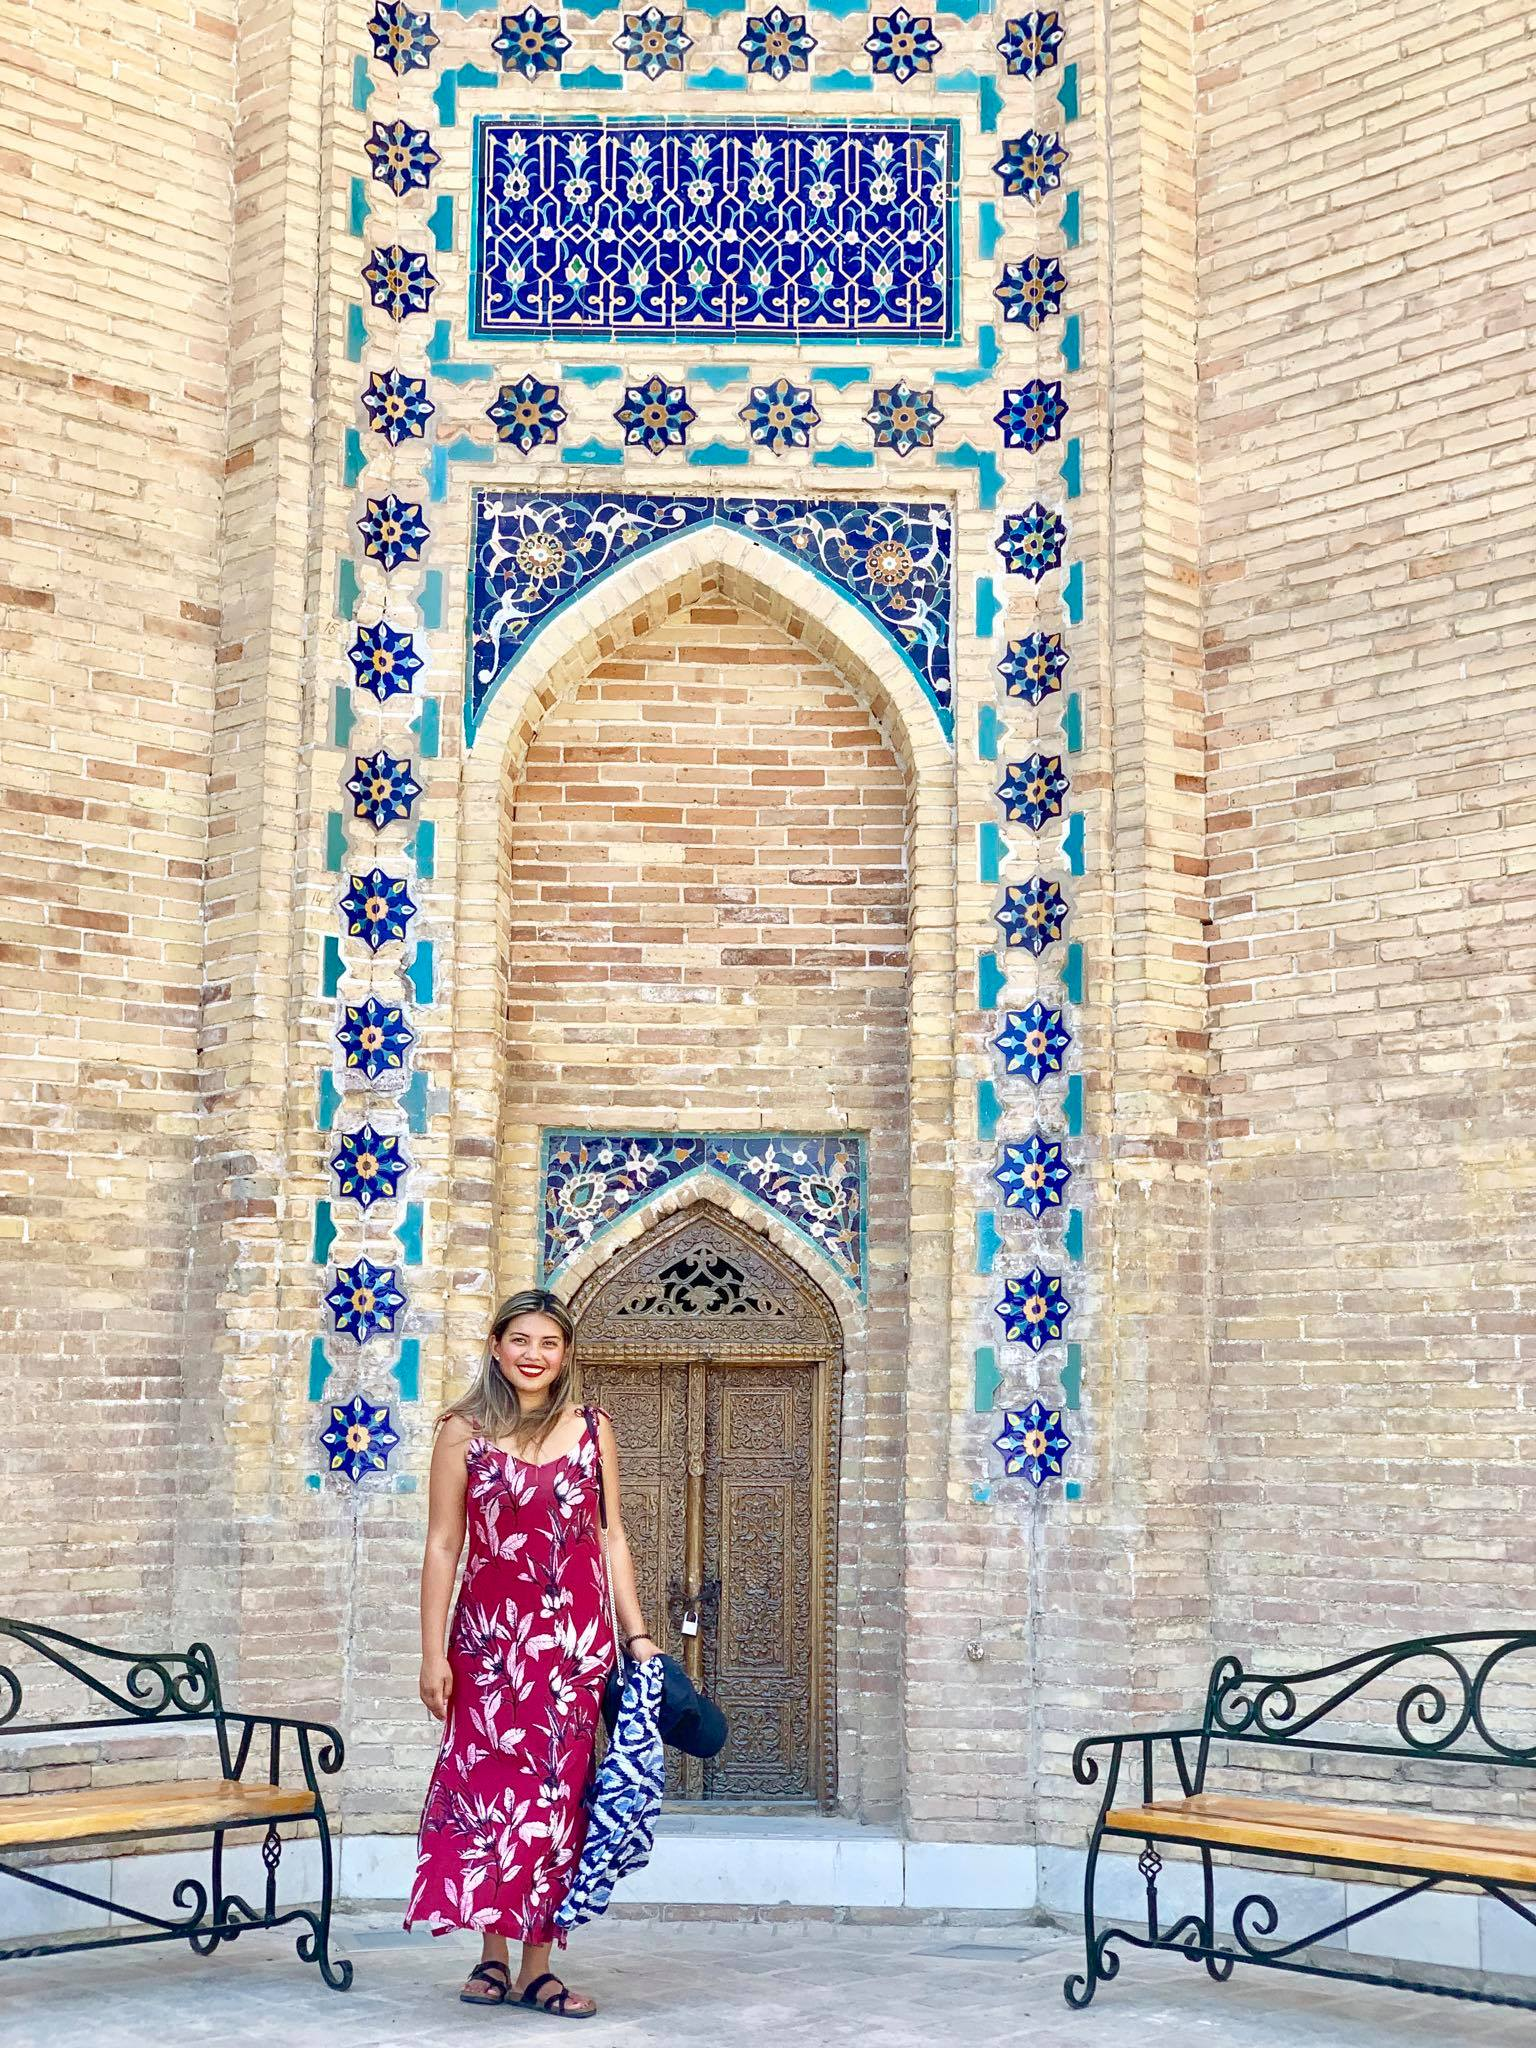 Kach Solo Travels in 2019 Hello from Samarqand  Samarkand in the southeastern part of Uzbekistan9.jpg